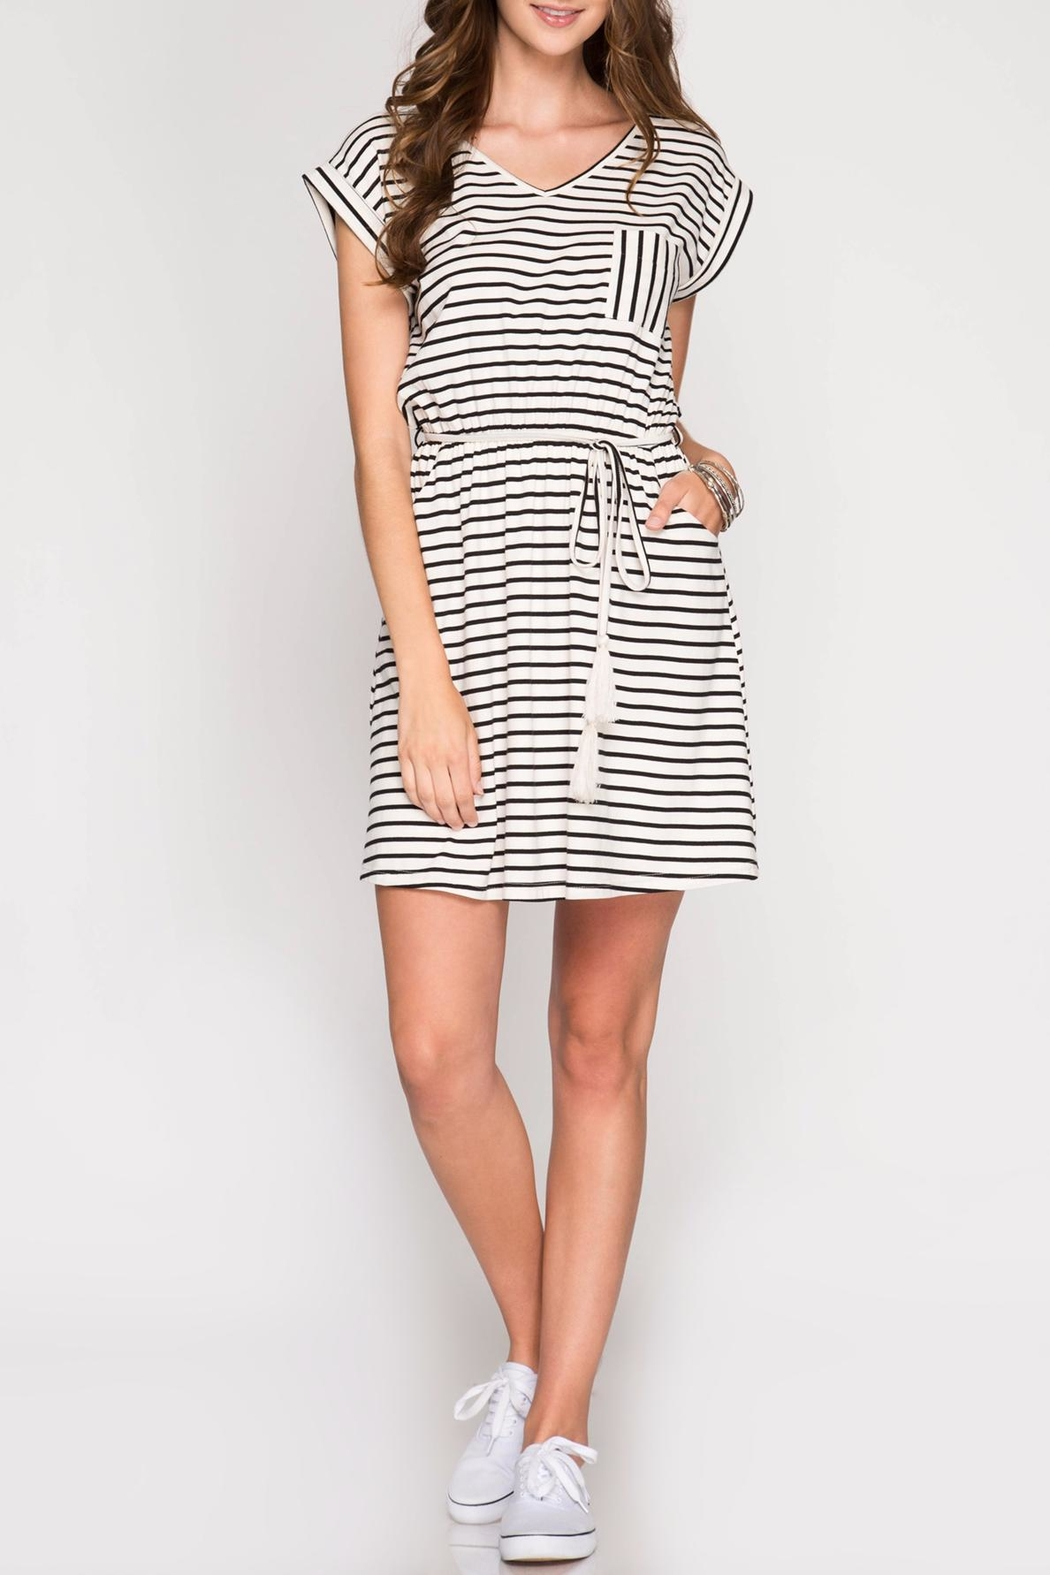 She + Sky Knit Striped Dress - Front Cropped Image